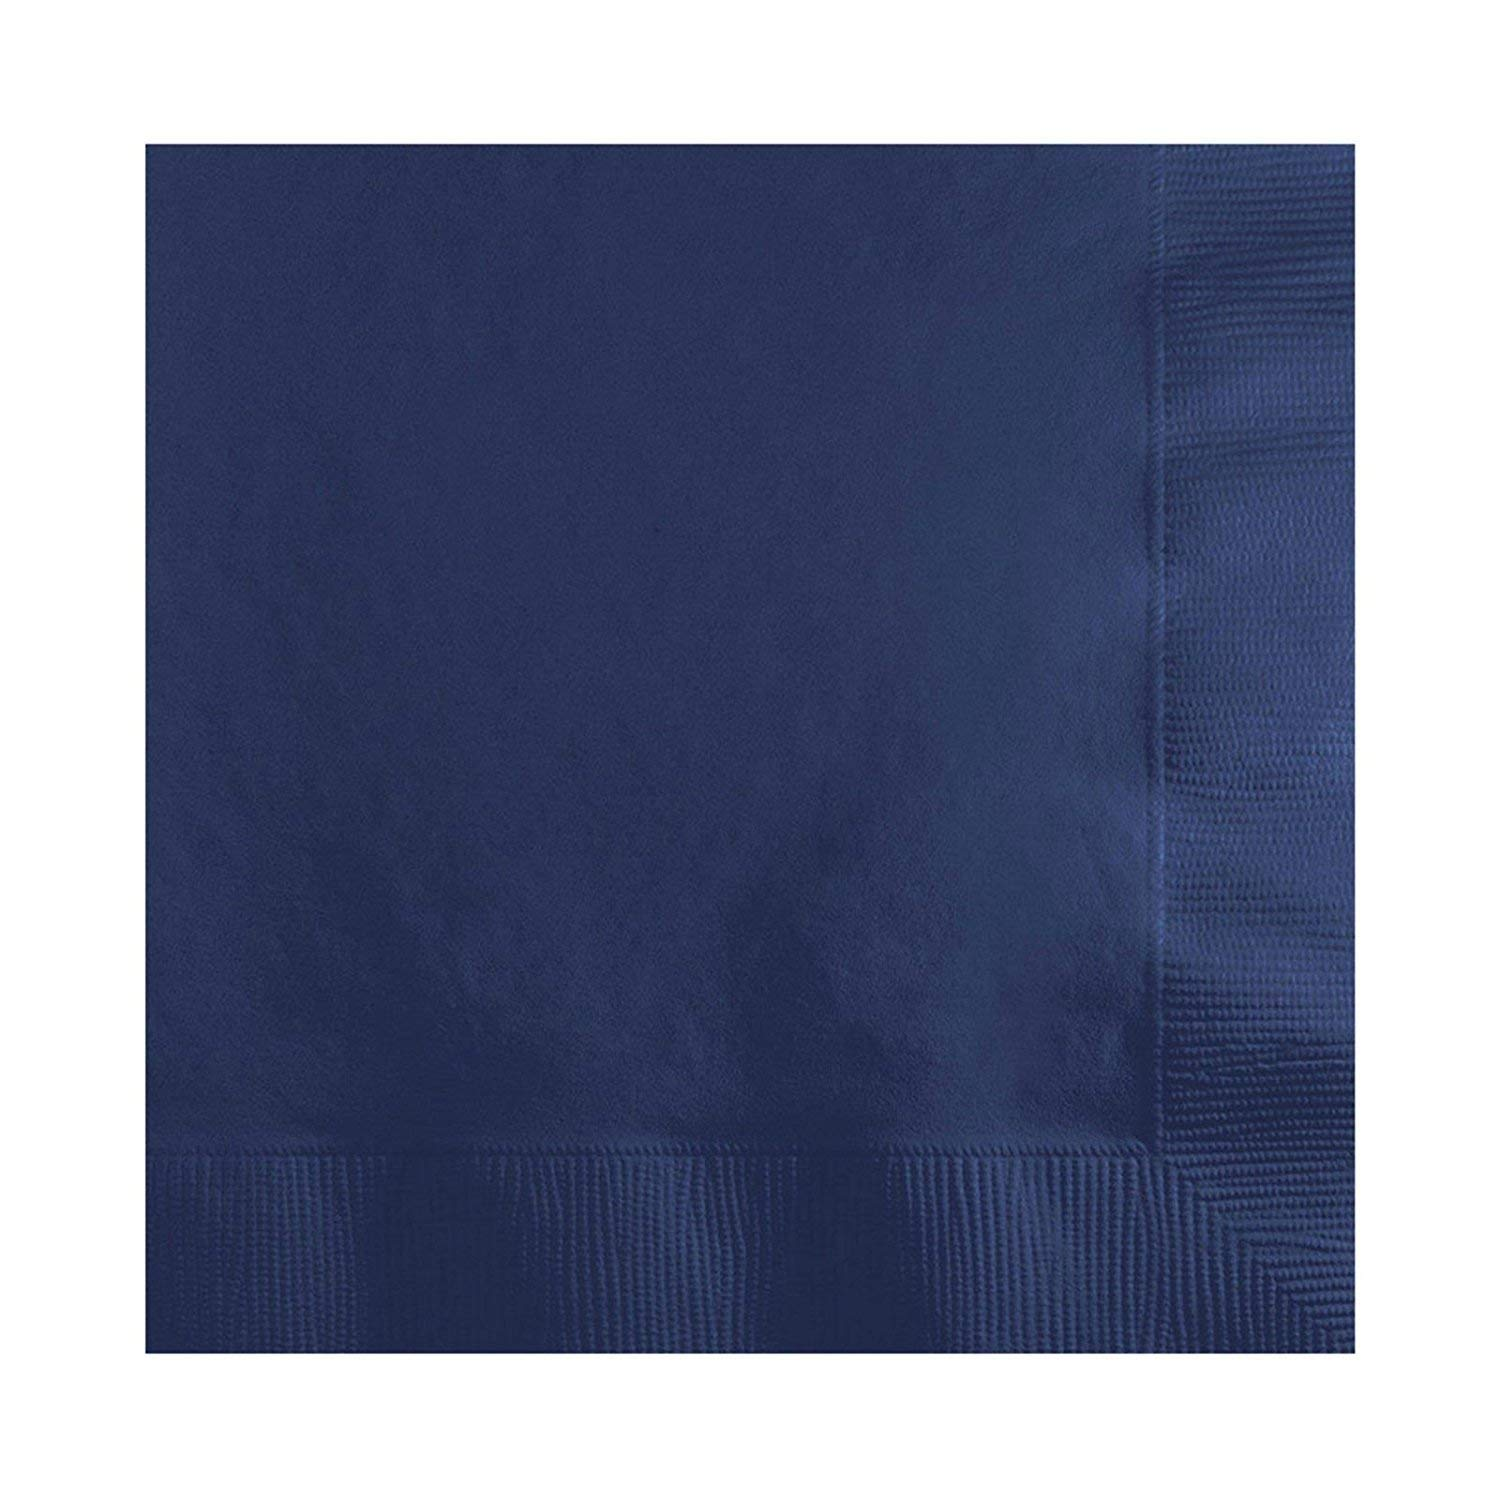 Navy Beverage Napkins (100-count) and Navy Dinner Napkins (100-count), and Comes with a Party Planning Checklist by Creative Converting Touch of Color